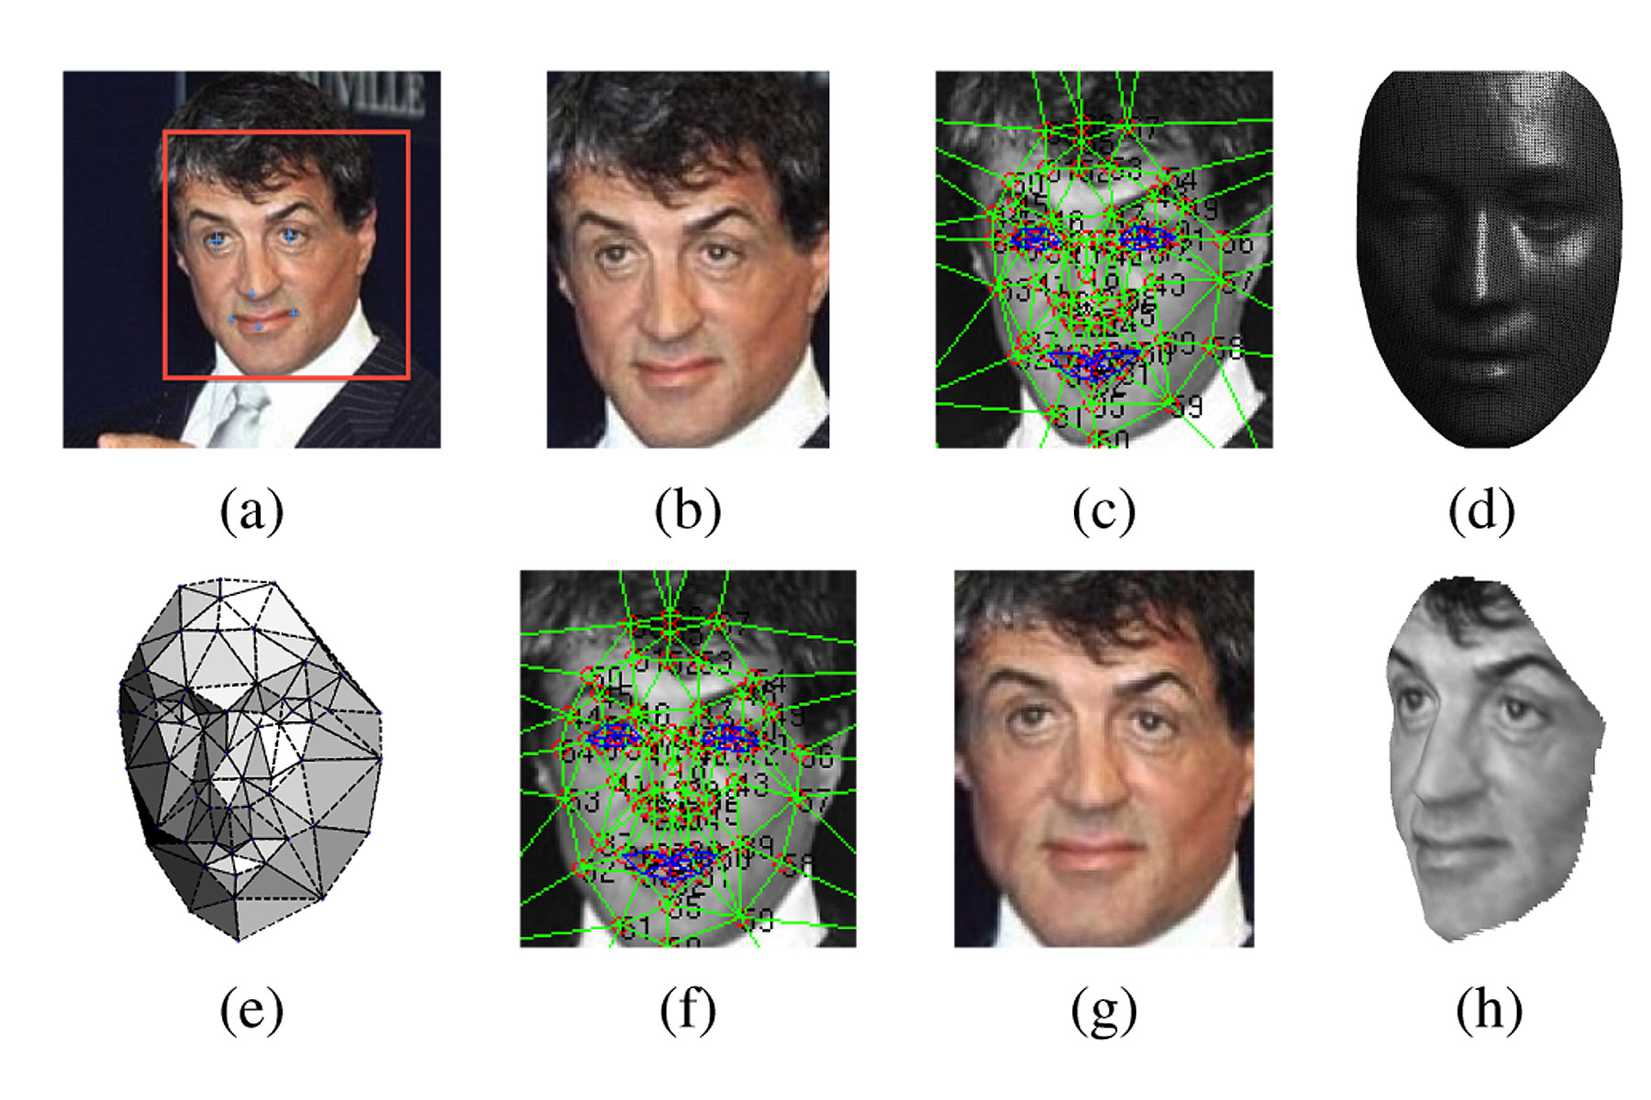 In a paper on DeepFace, the developers show an example of the application at work to recognize the actor Sylvester Stallone.